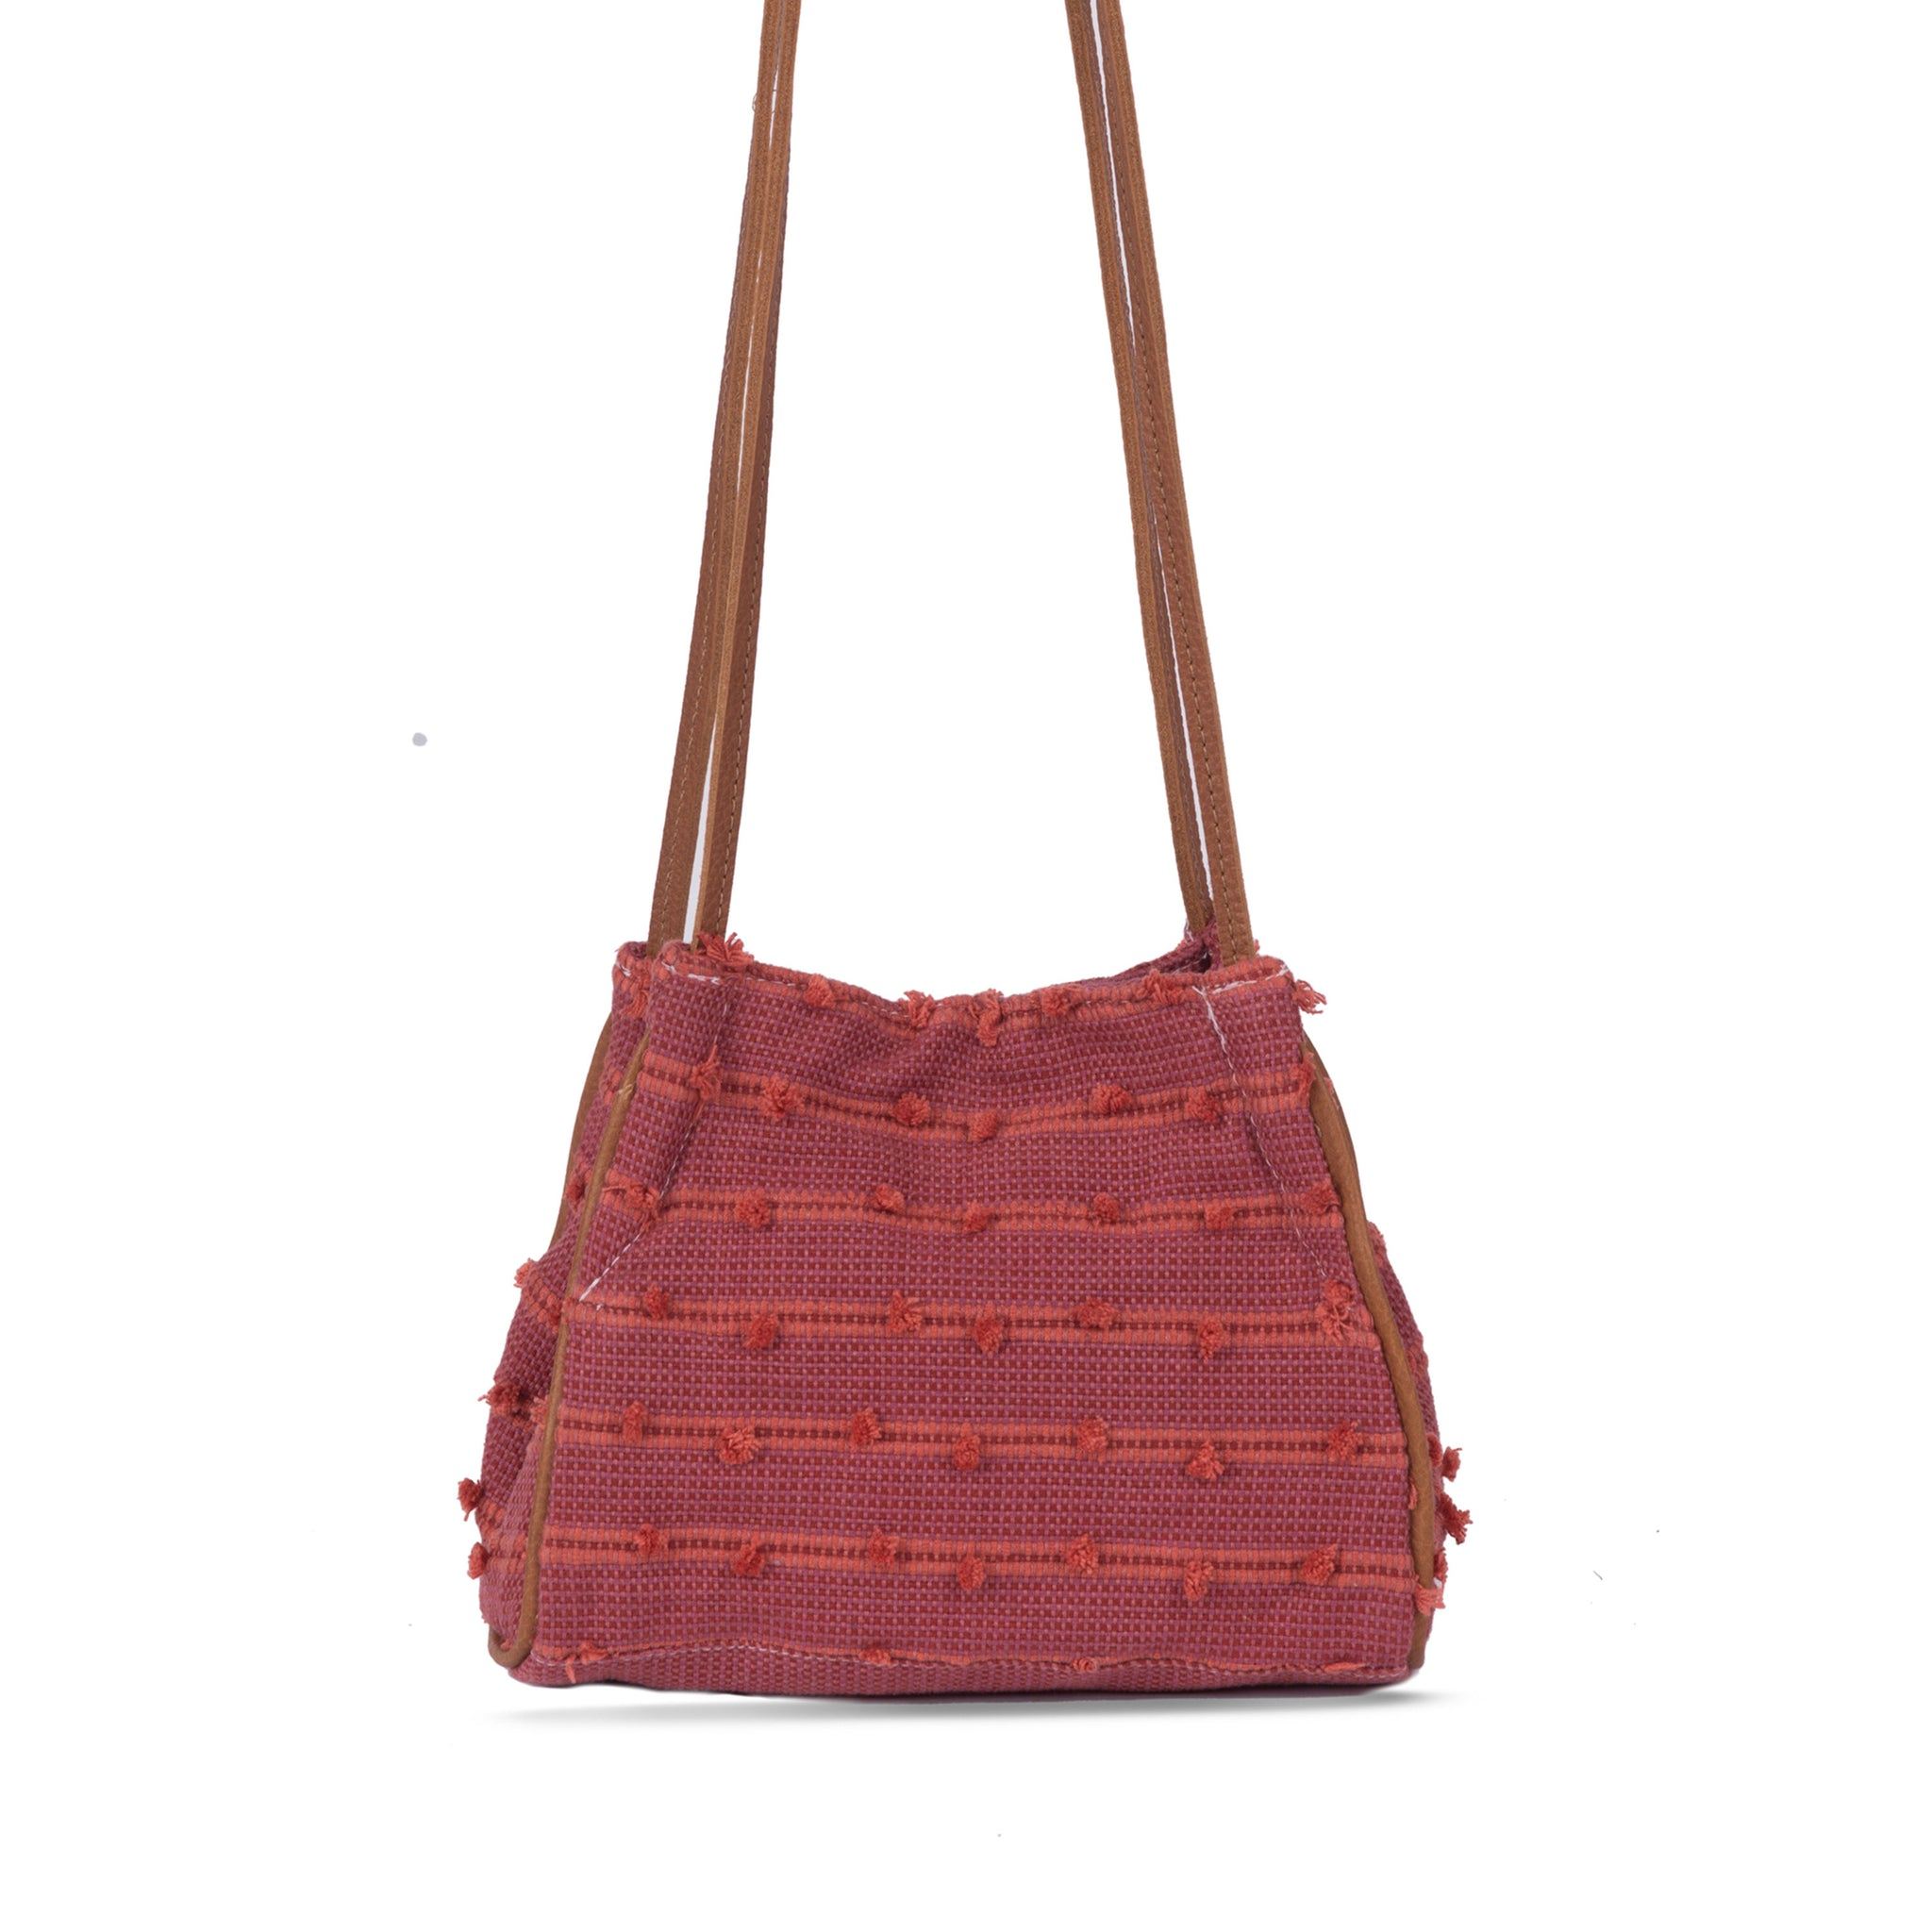 Hand woven Julietta Petite Bucket - Ethical Shopping at Mercado Global